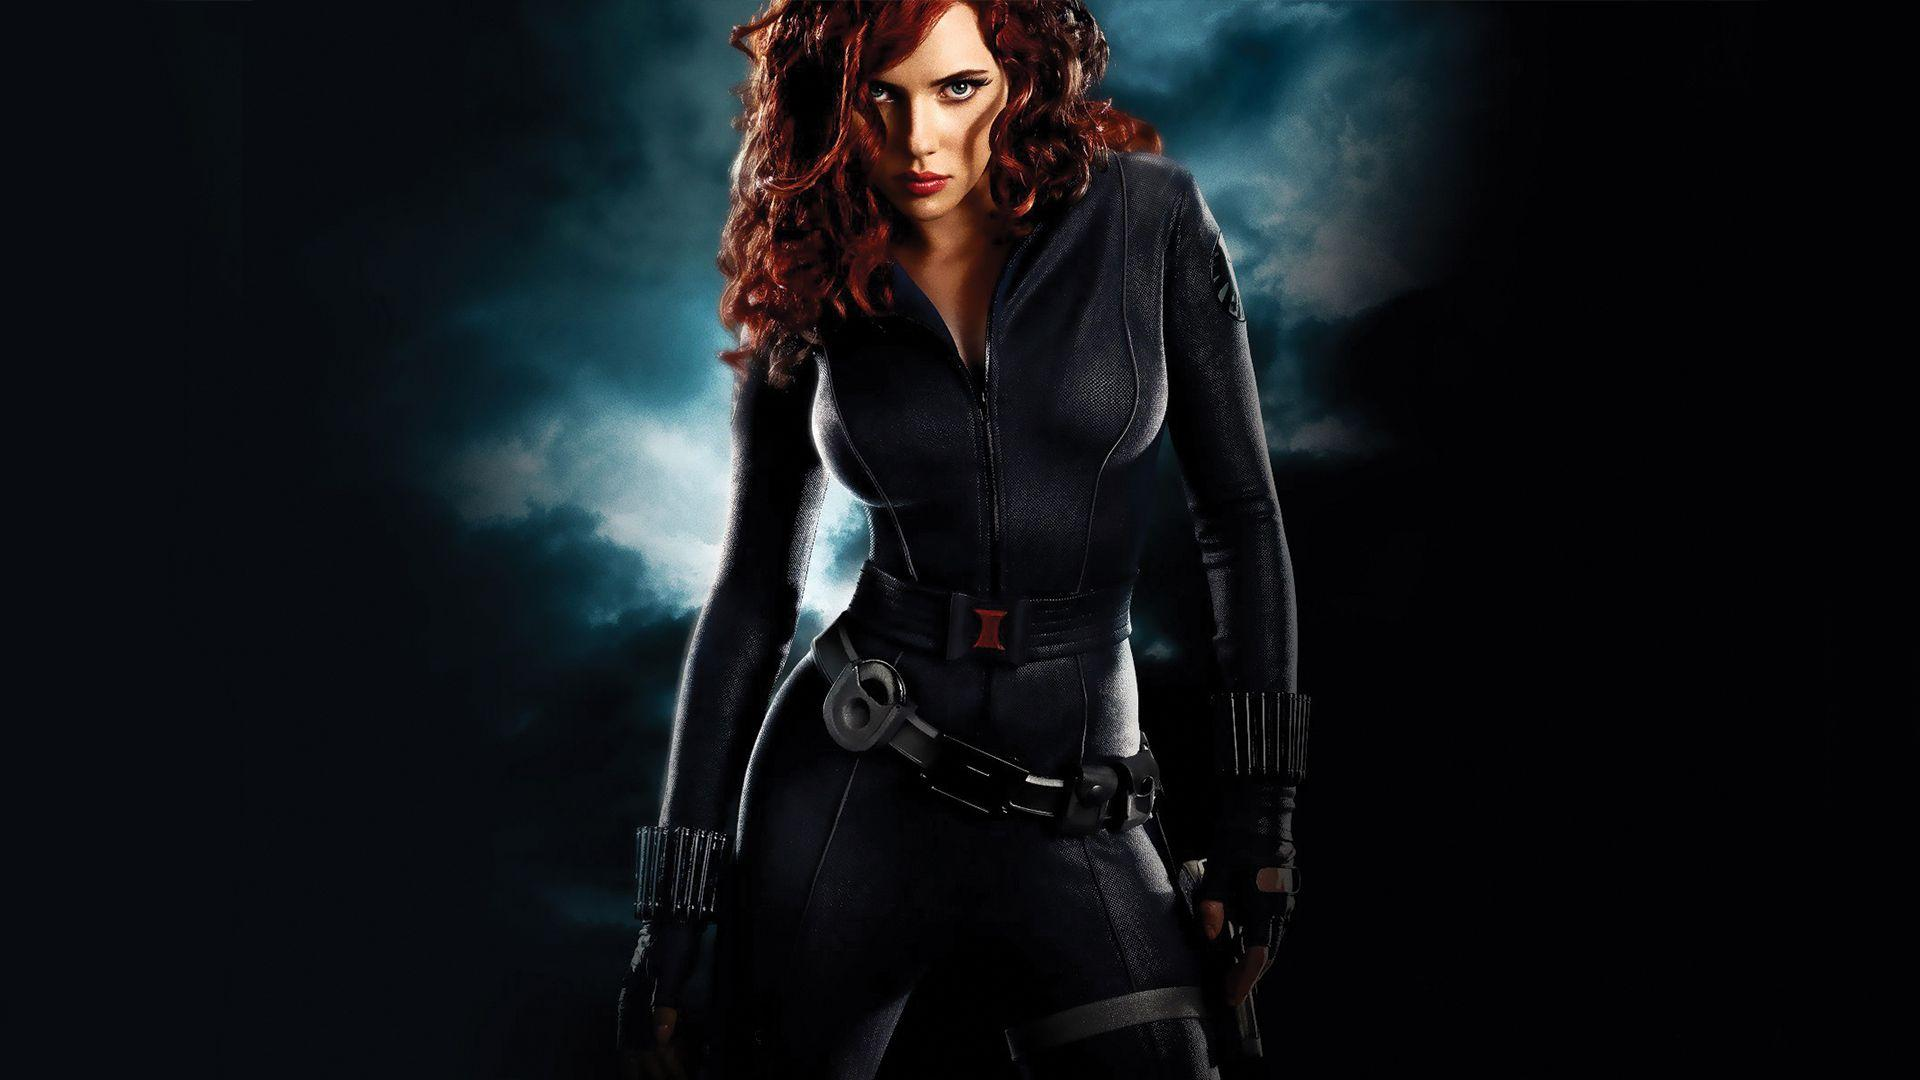 Black Widow Wallpaper 4k Posted By Zoey Mercado